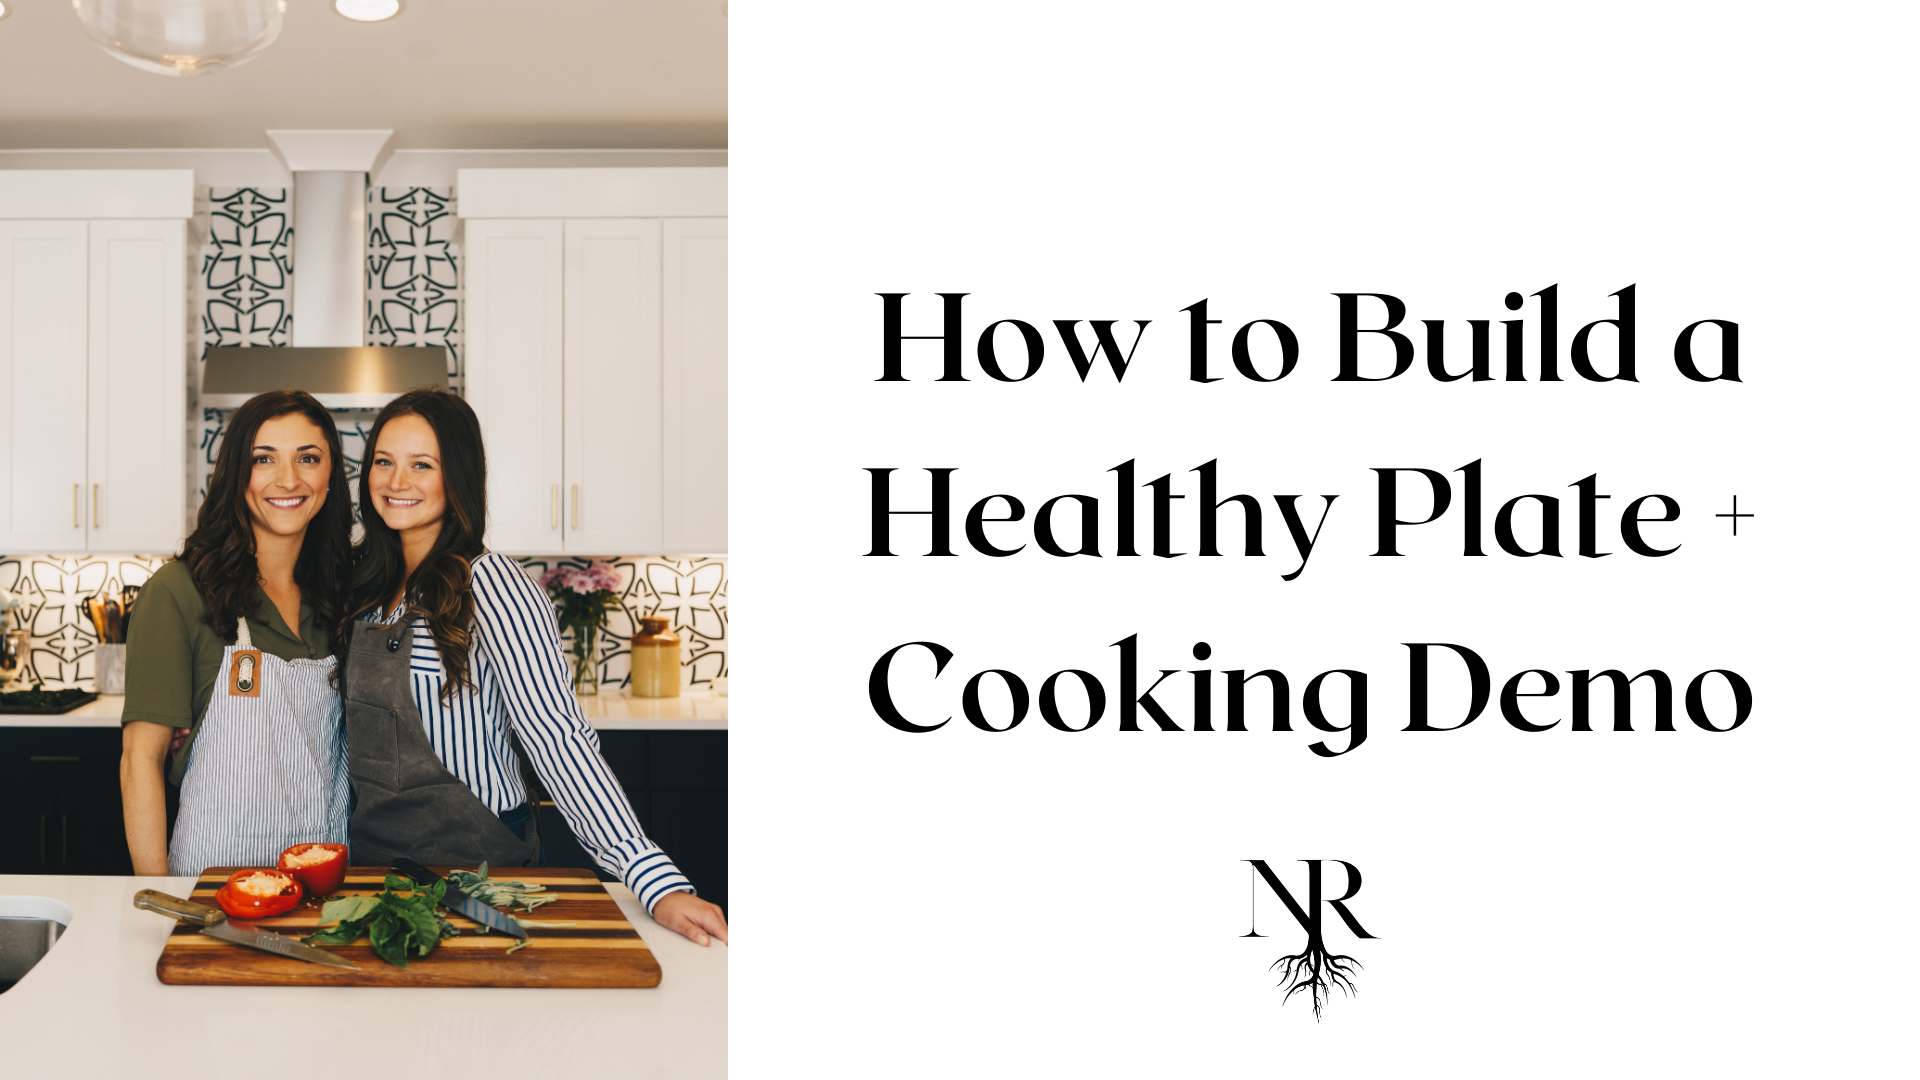 How to Build a Healthy Plate + Cooking Demo